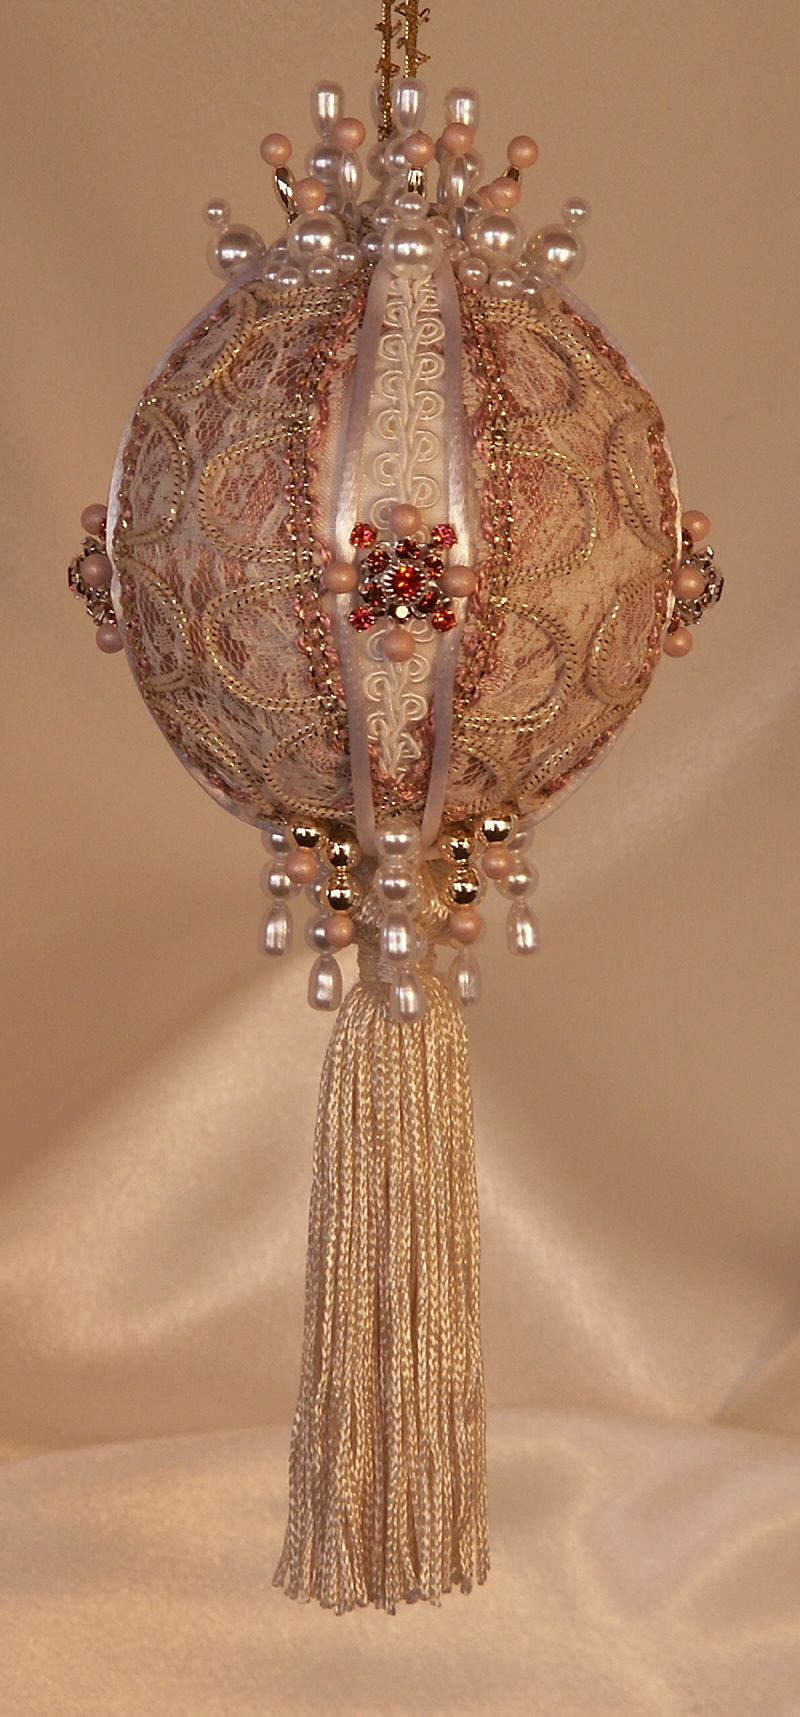 Rose colored ornaments - Victorian Style Ornaments ...